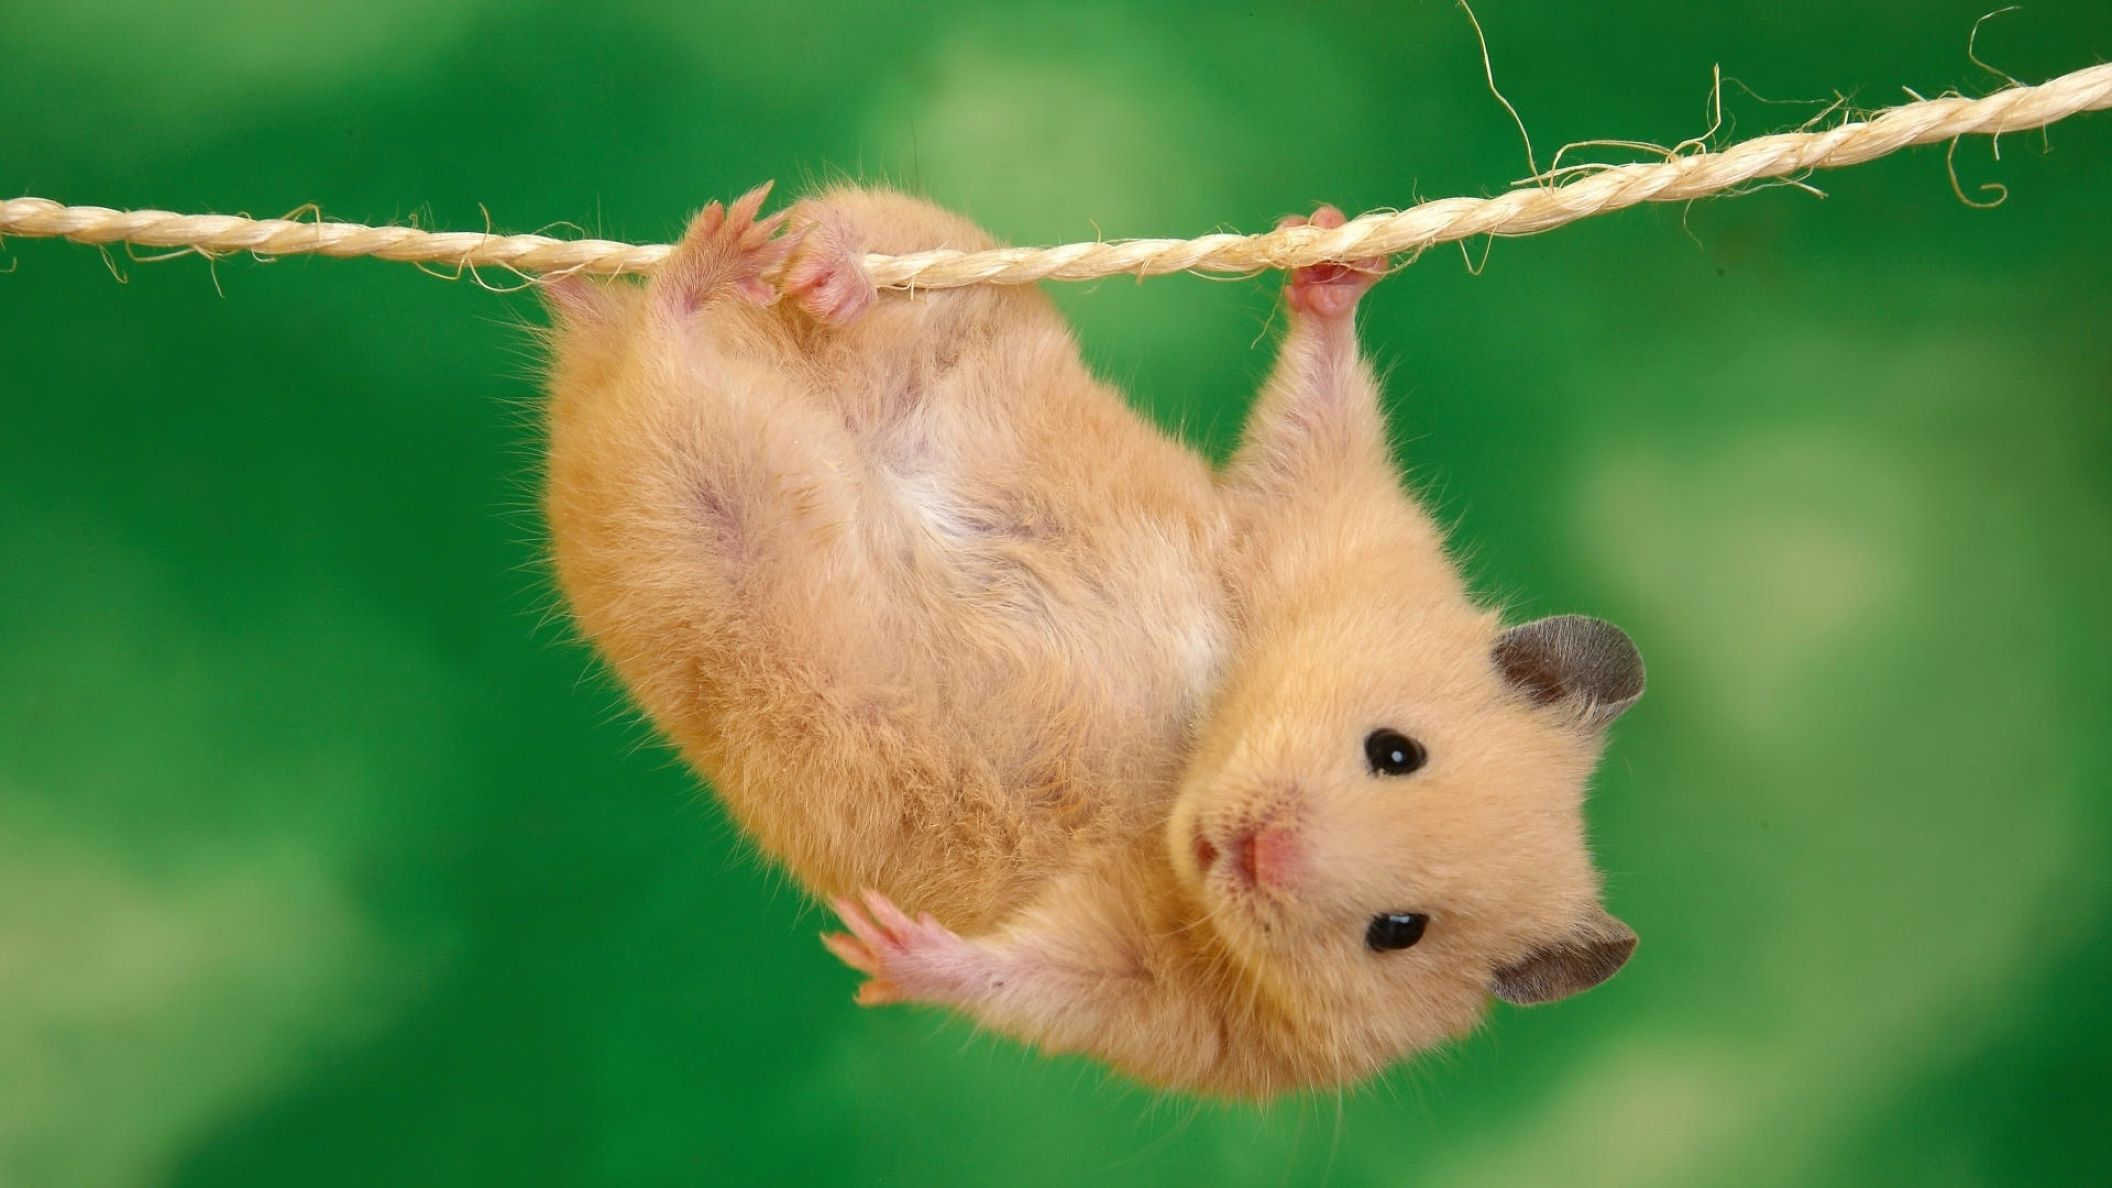 Download free HD Cute Hamster Animal Desktop Wallpaper, image